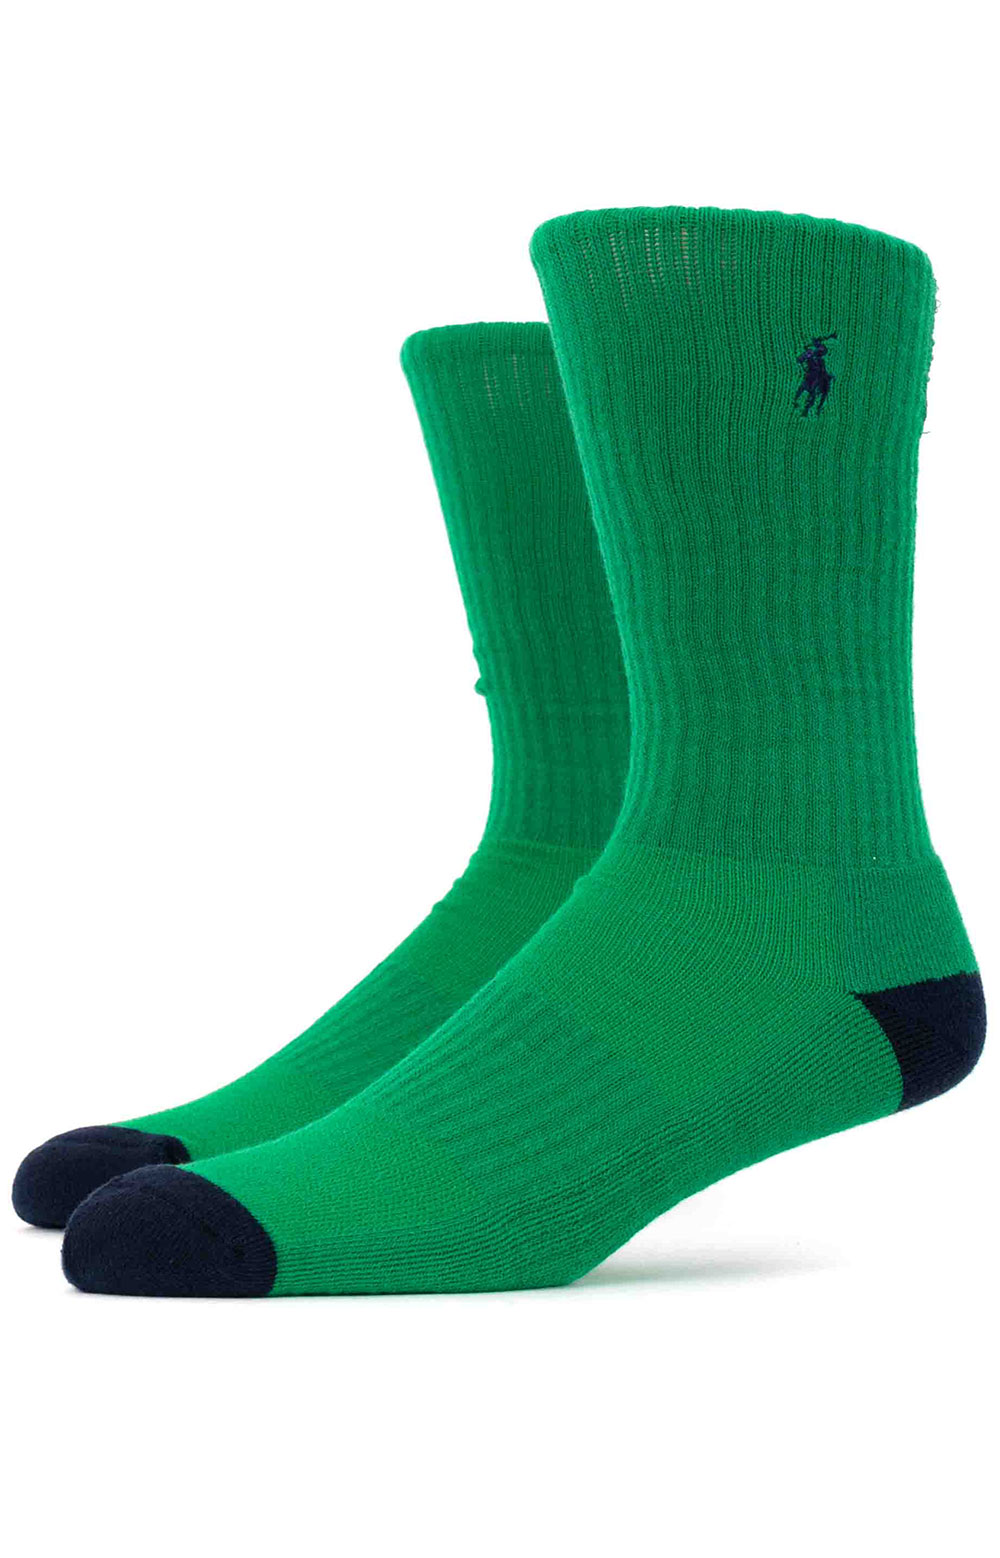 Colorblock Cushioned Crew Socks - 6 Pack 6